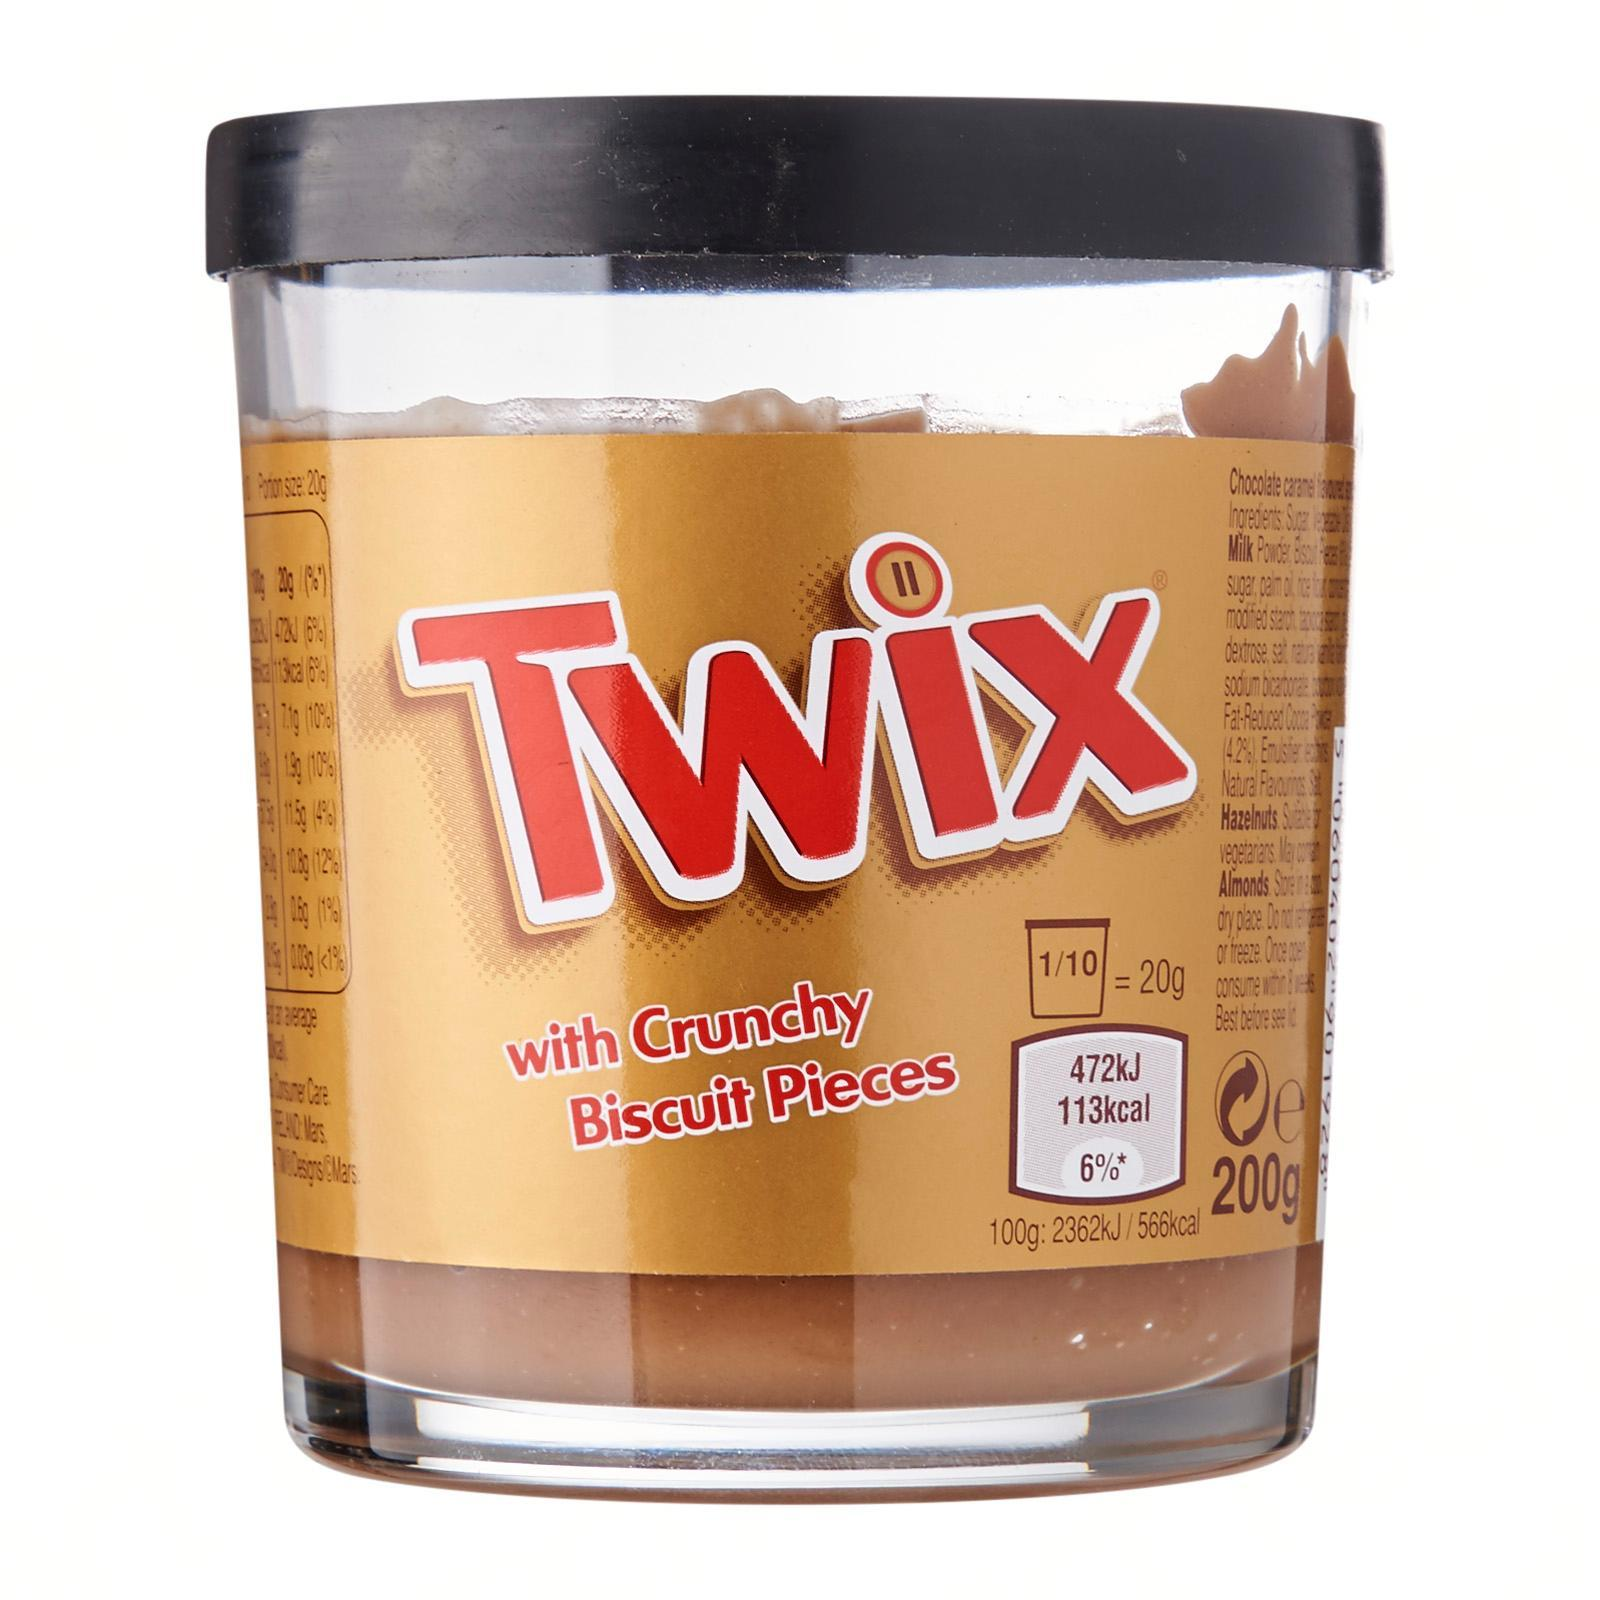 Twix Chocolate Spread